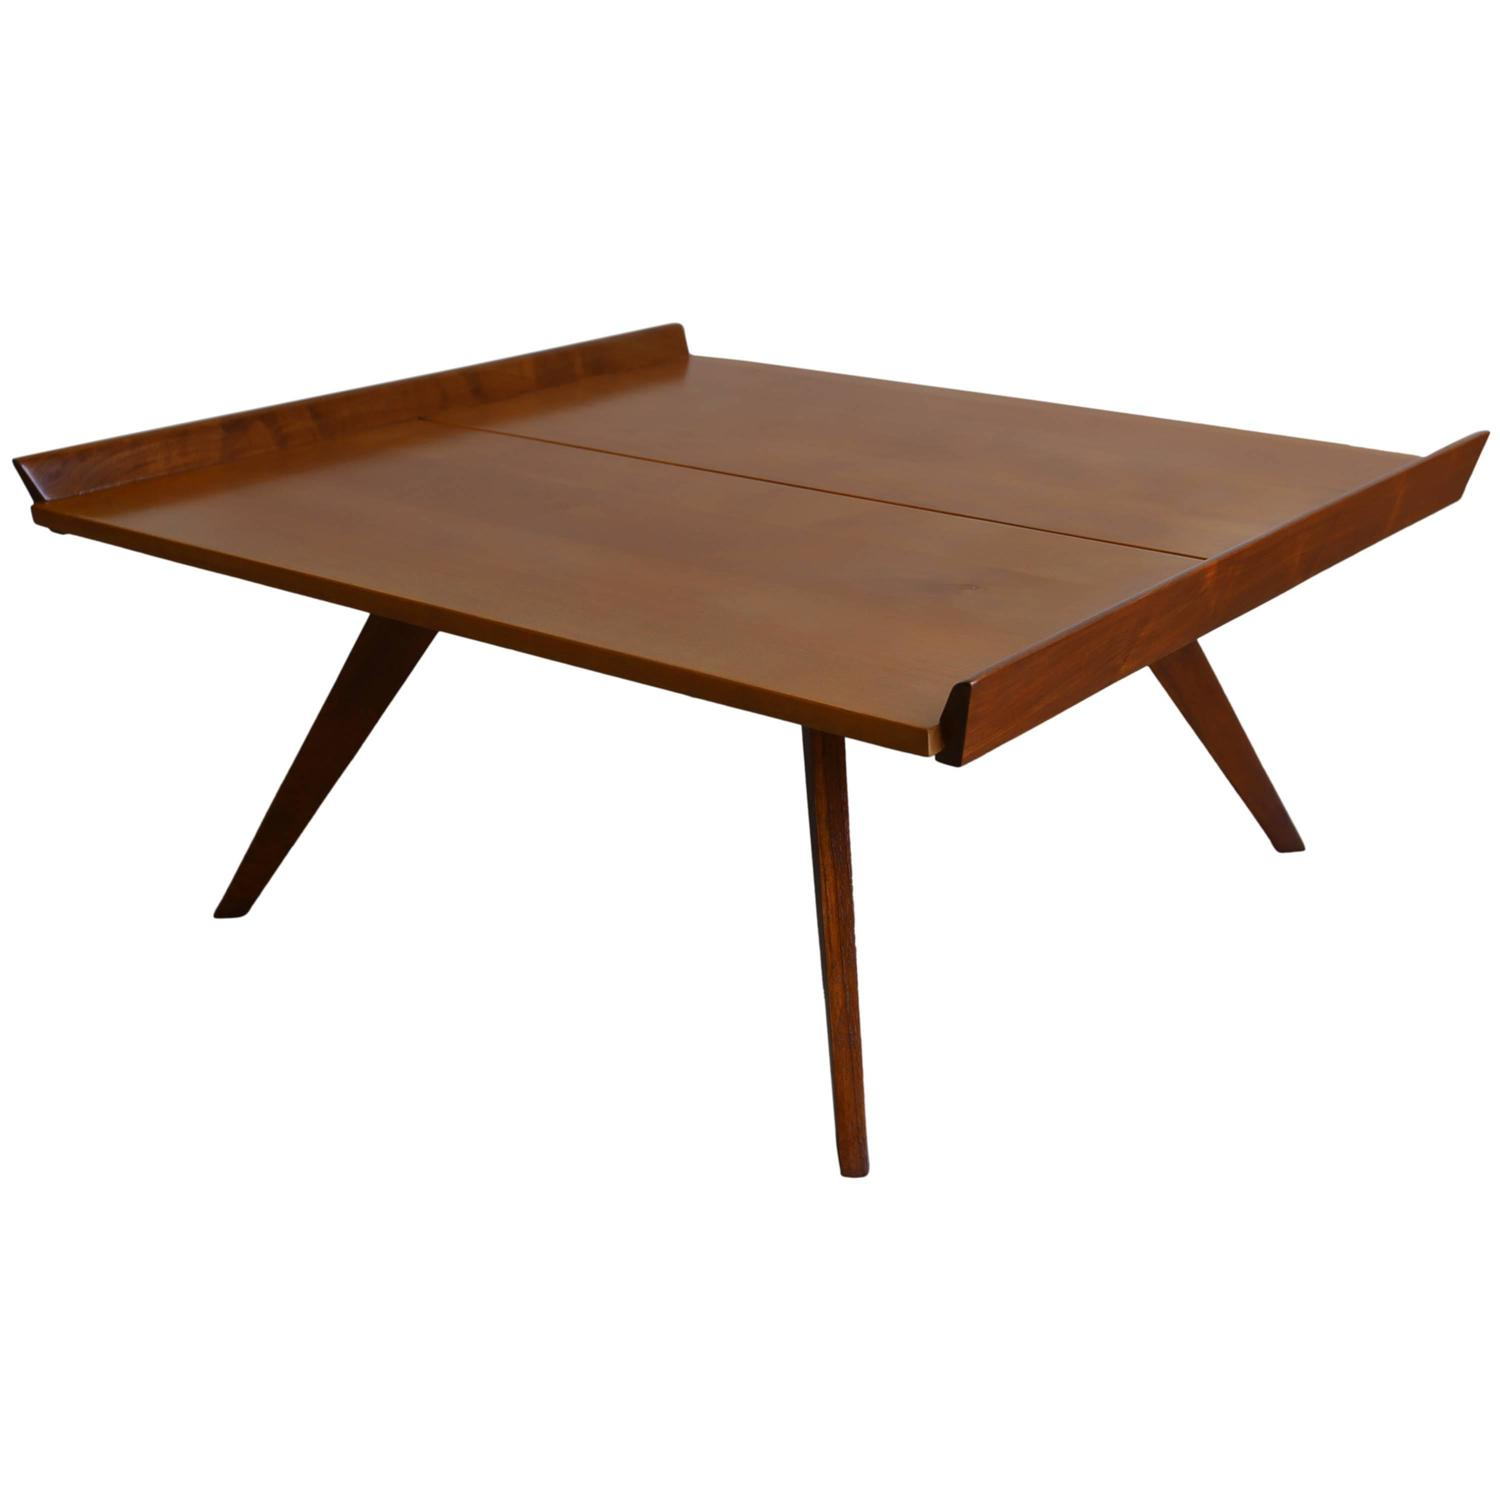 M10 Coffee Table By George Nakashima For Knoll At 1stdibs